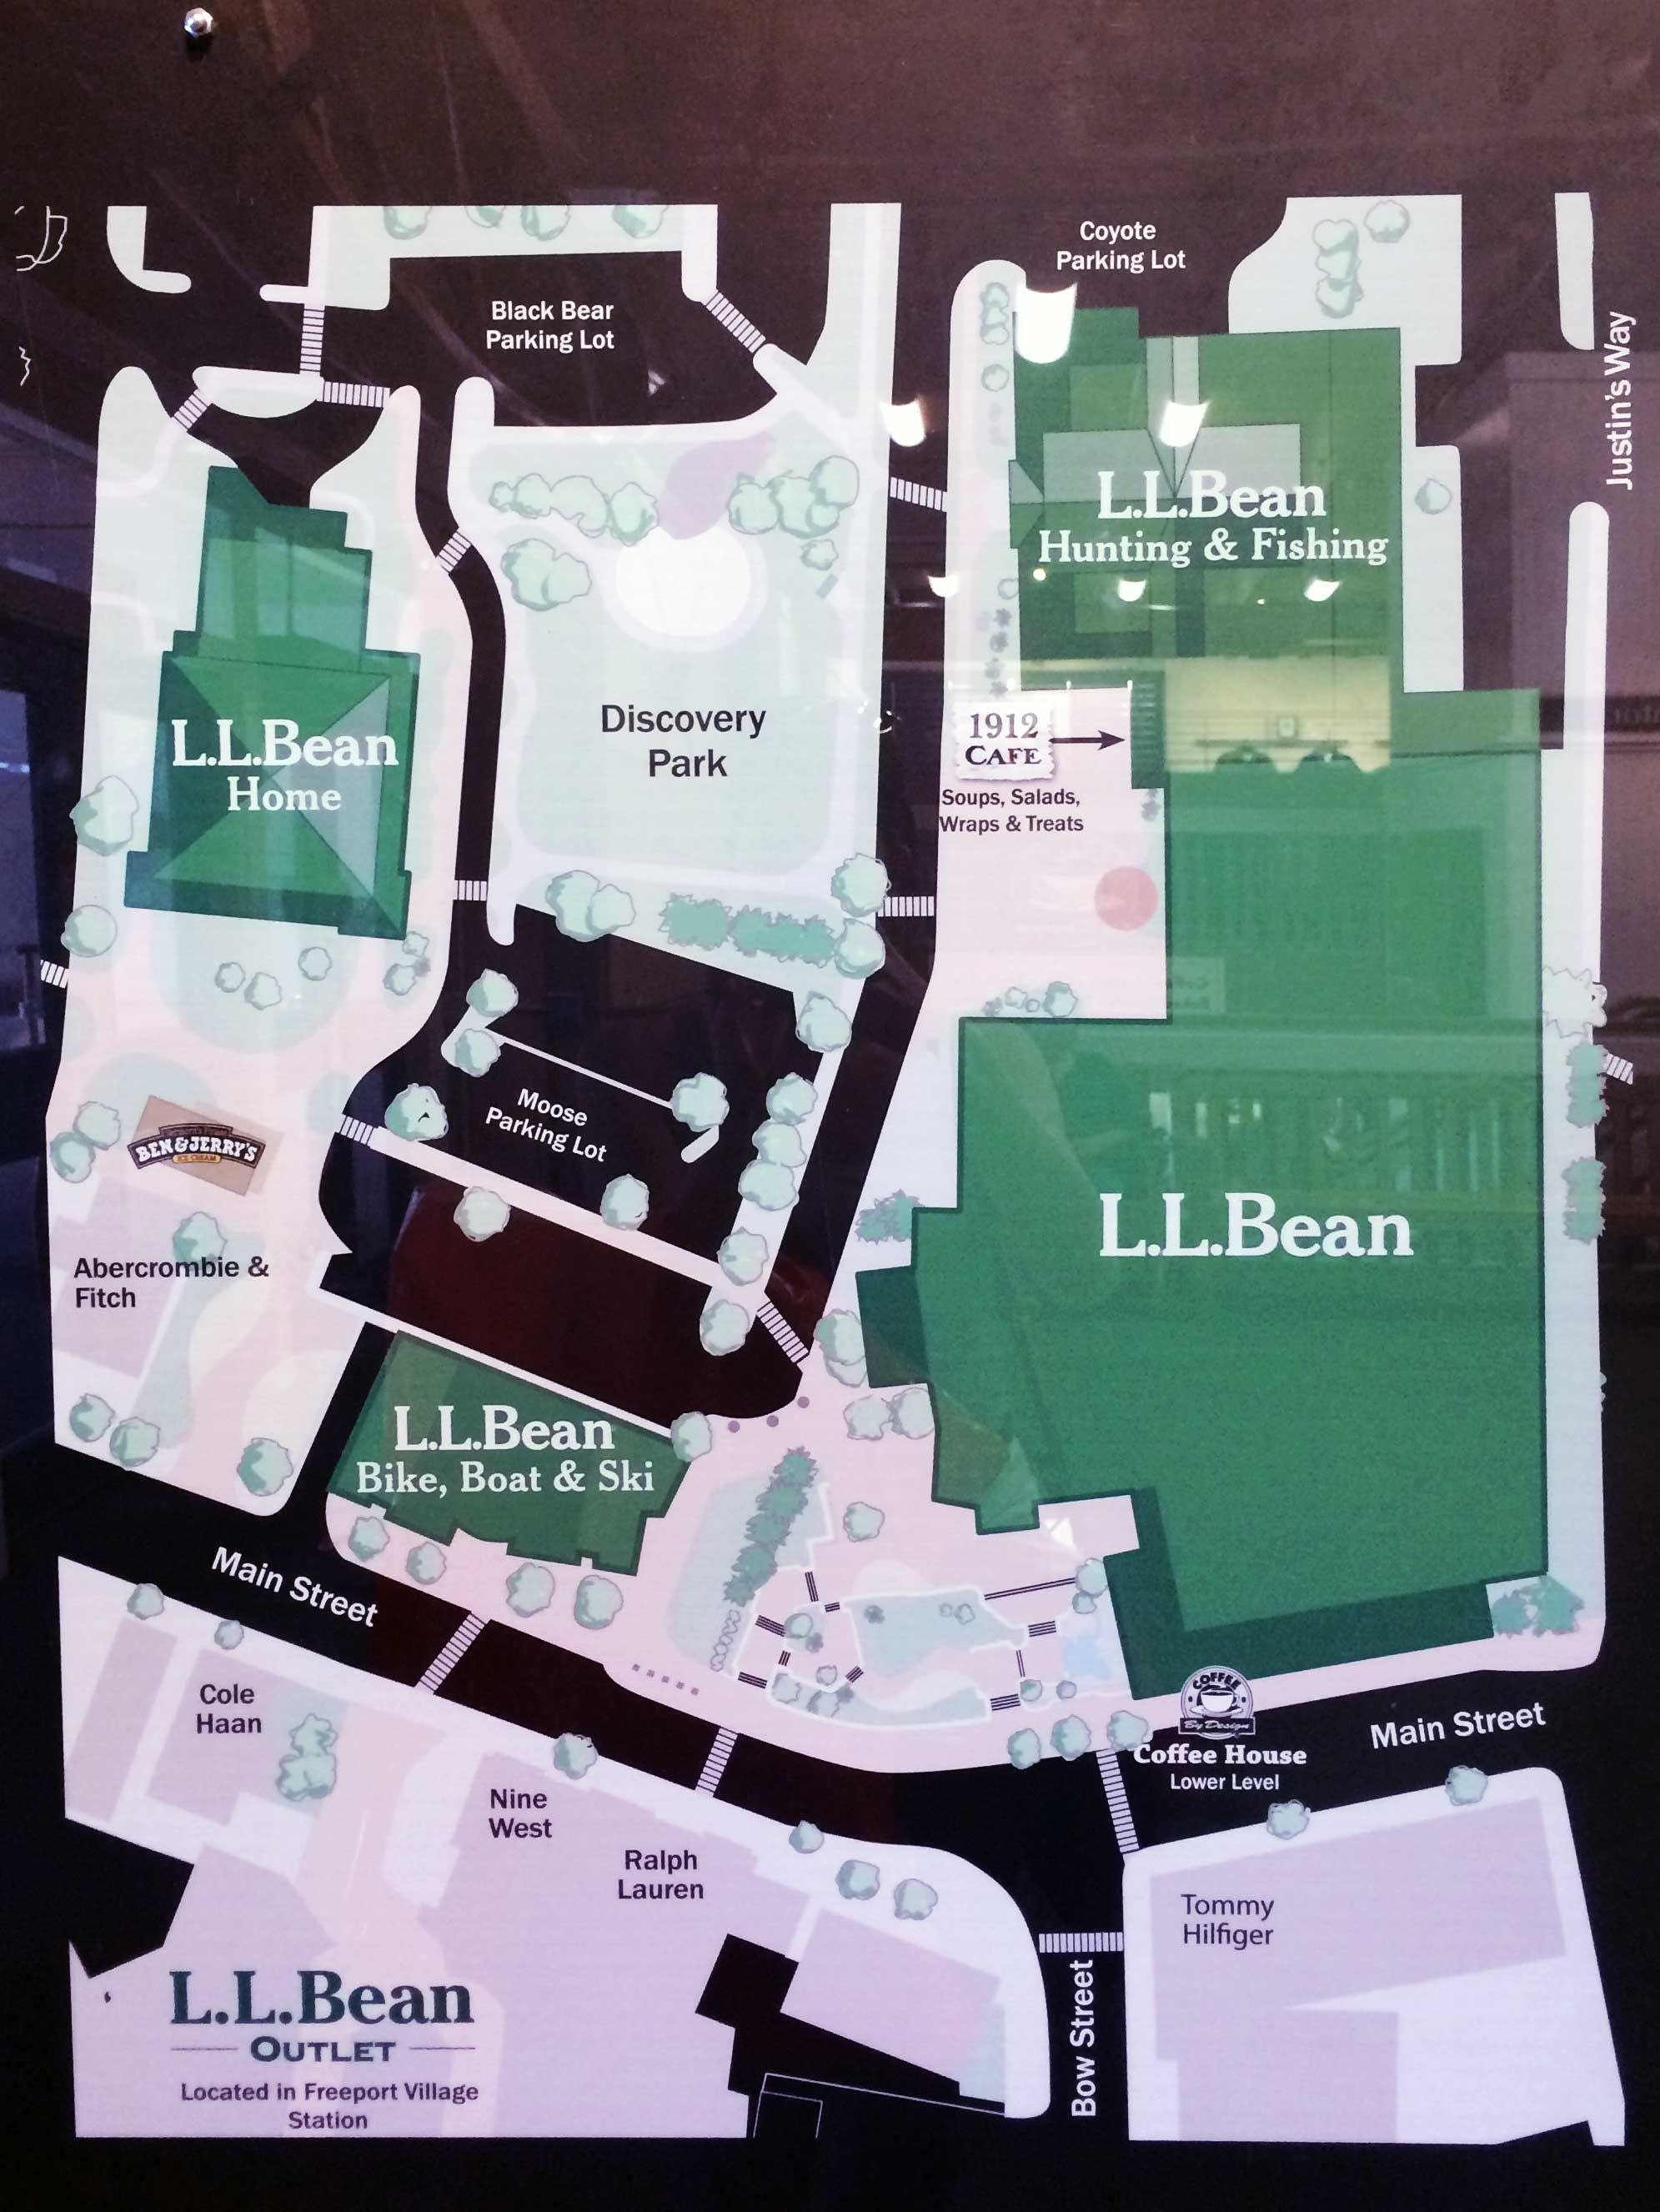 LL Bean Campus...While we were there you could enter a contest to win your own yurt!